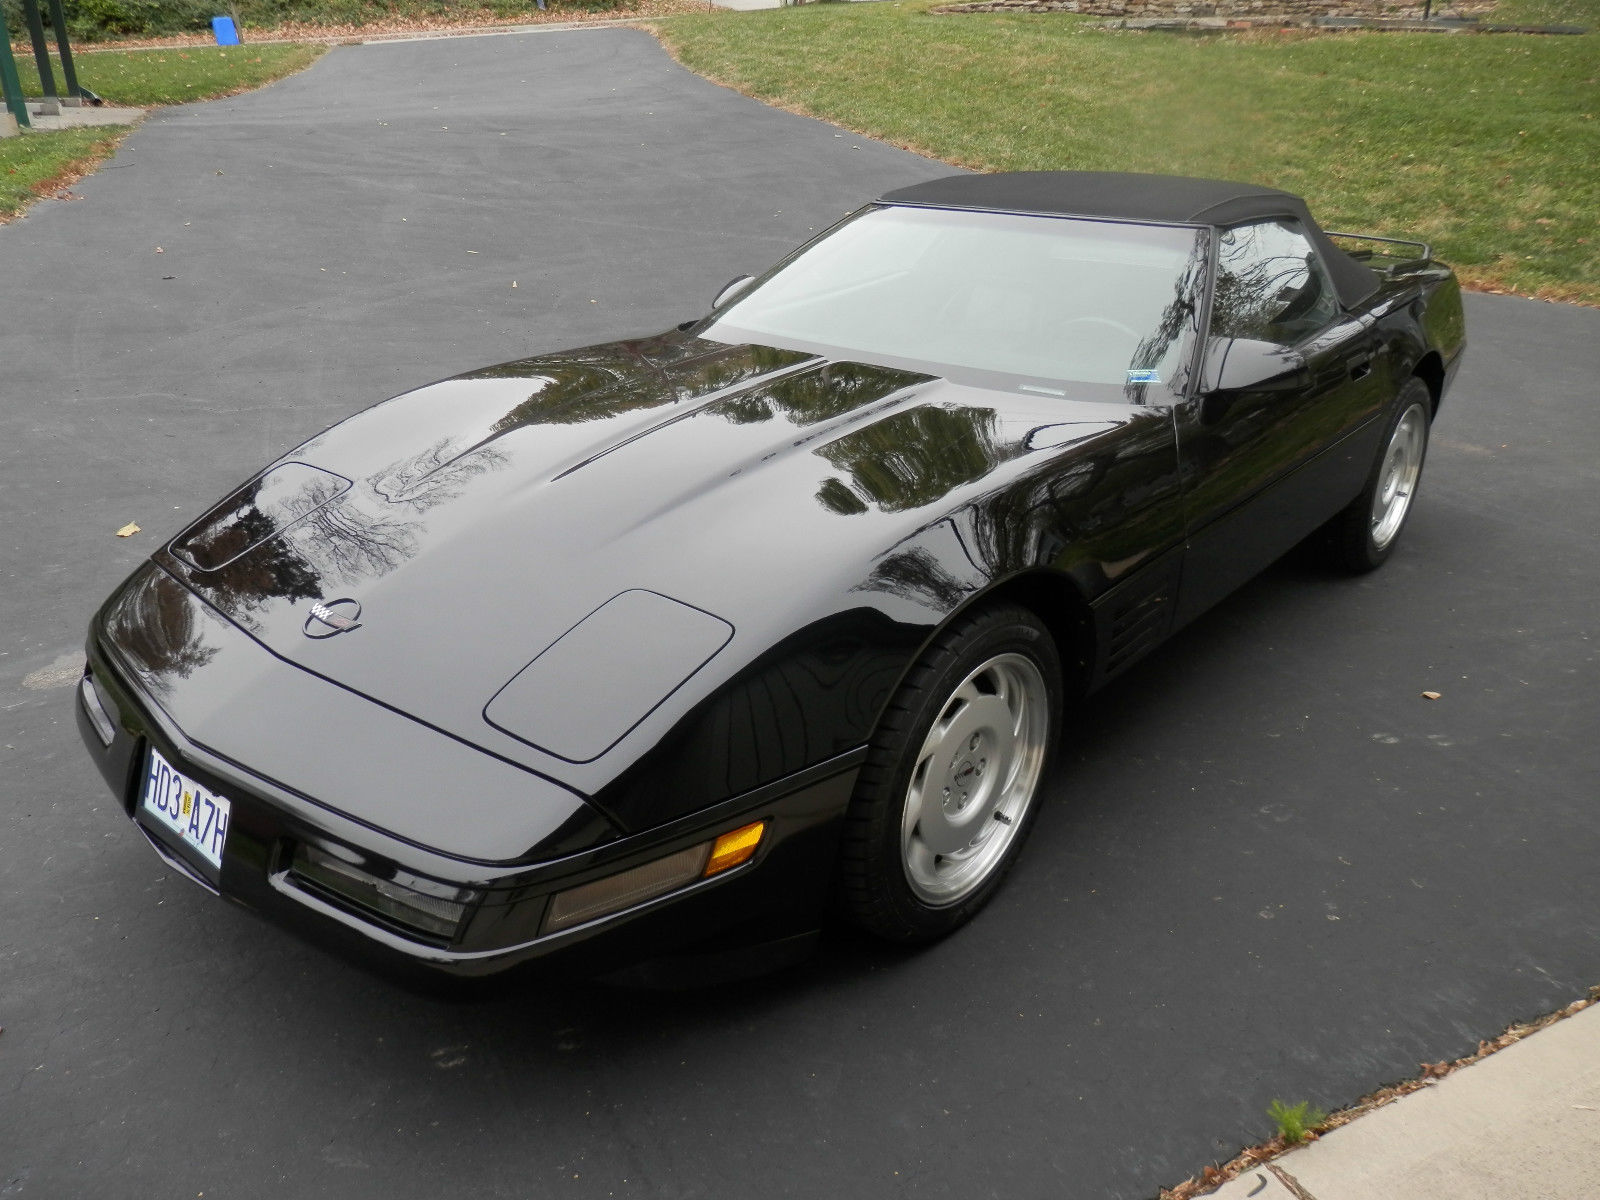 1992 chevrolet corvette convertible 6 speed black exterior black interior classic chevrolet 1992 corvette interior parts